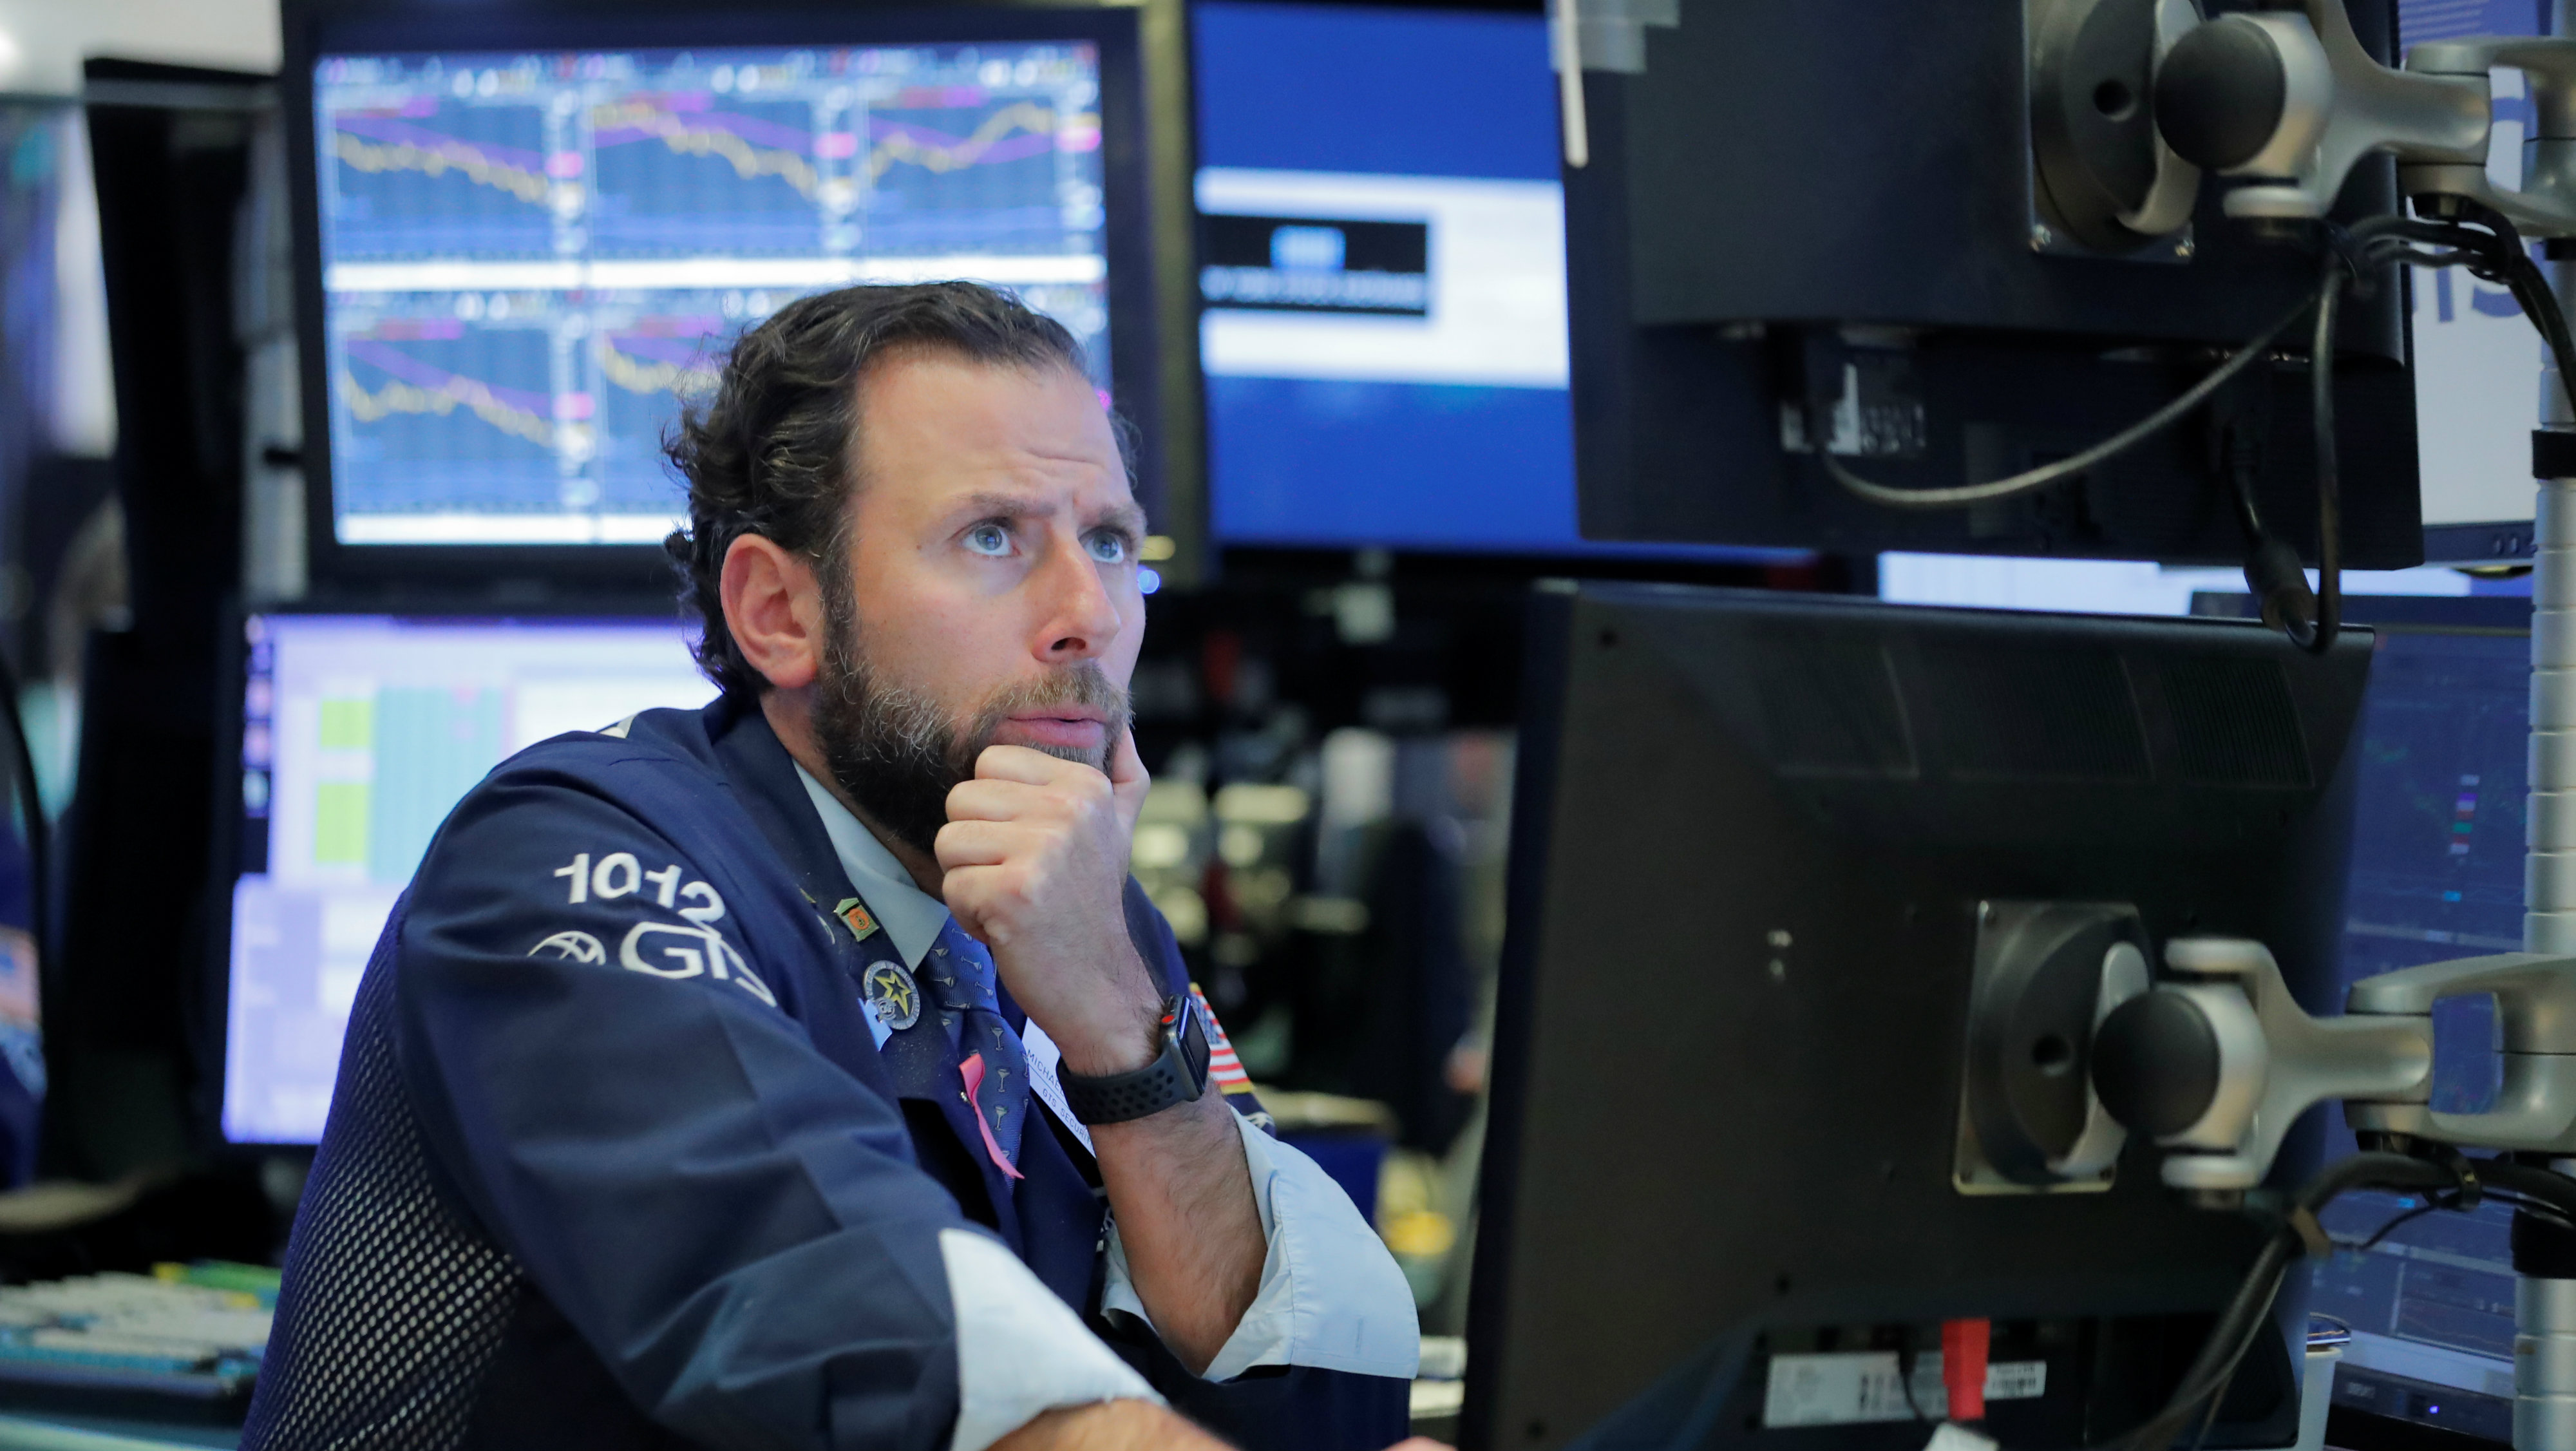 A trader works on the floor of the New York Stock Exchange (NYSE) in Manhattan